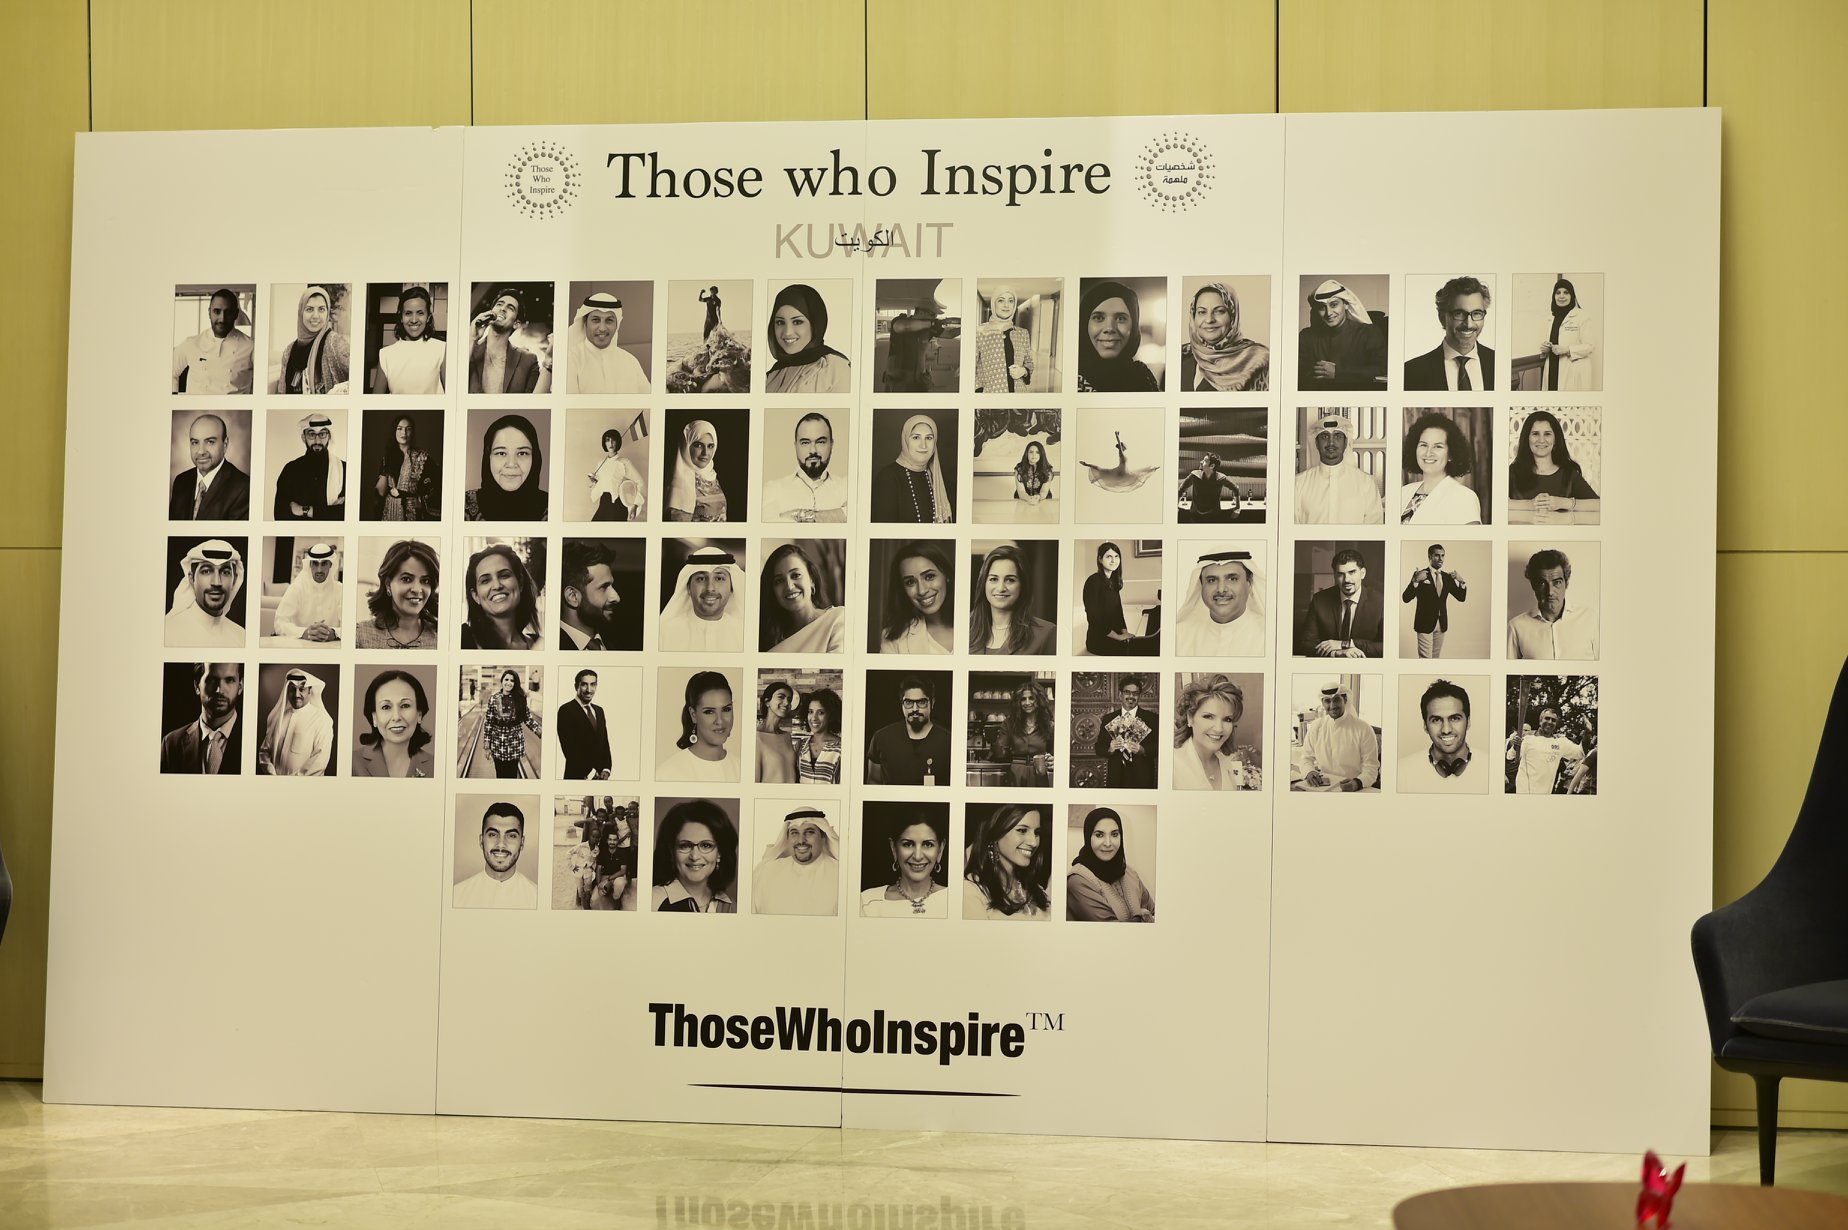 The 63 Inspiring Kuwaitis displayed on a big backdrop for the book launch ©Those Who Inspire